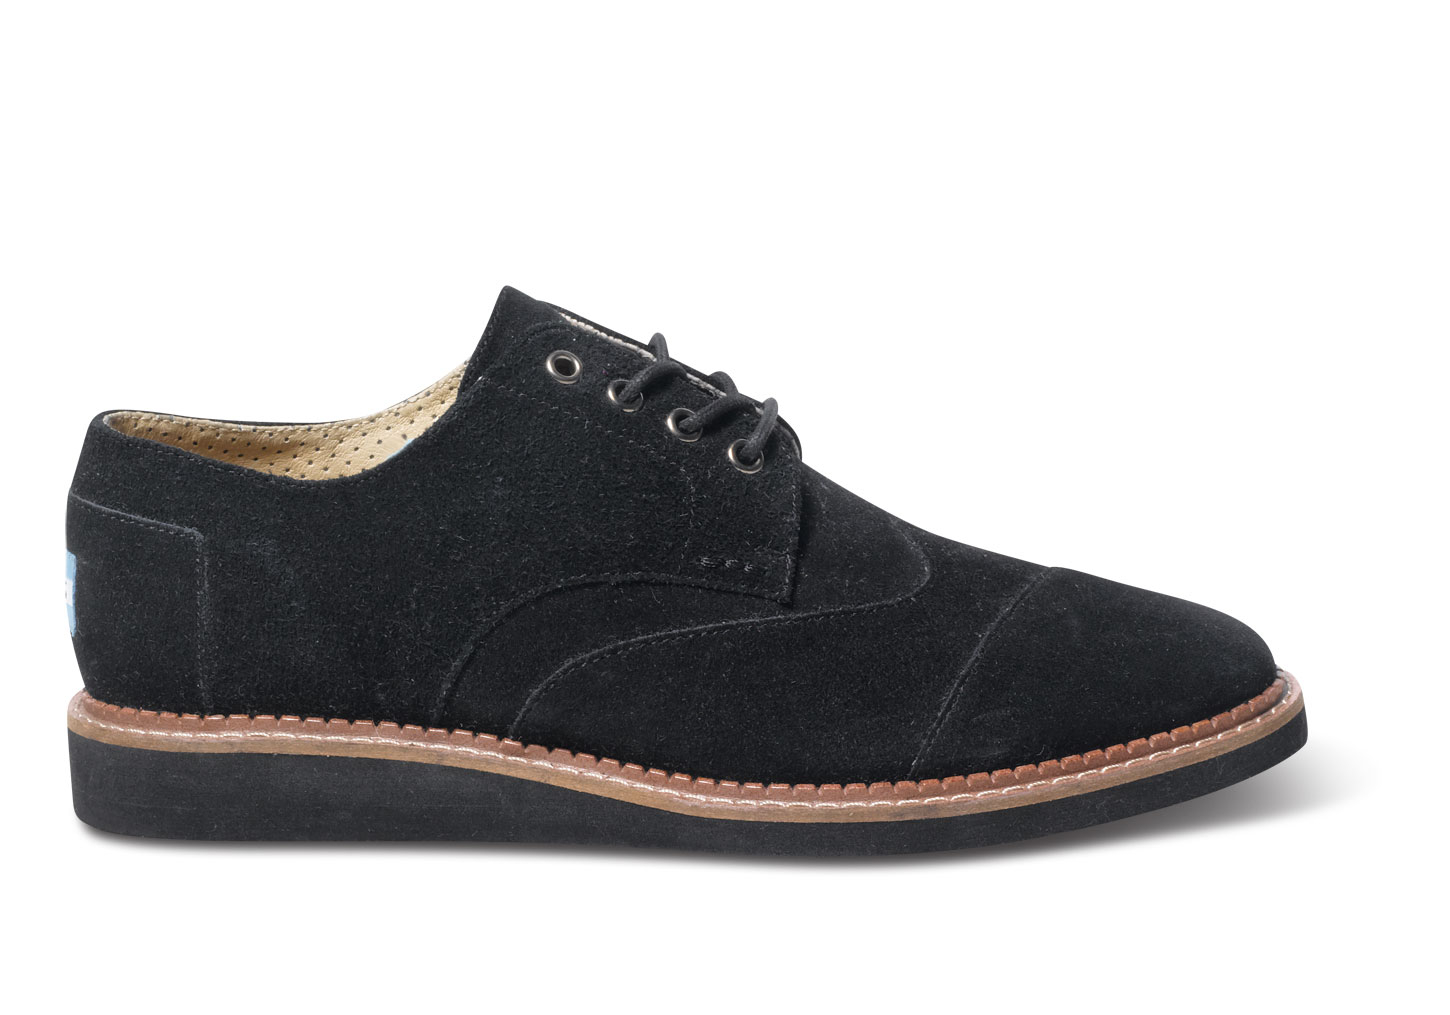 Find great deals on eBay for mens suede brogues. Shop with confidence.